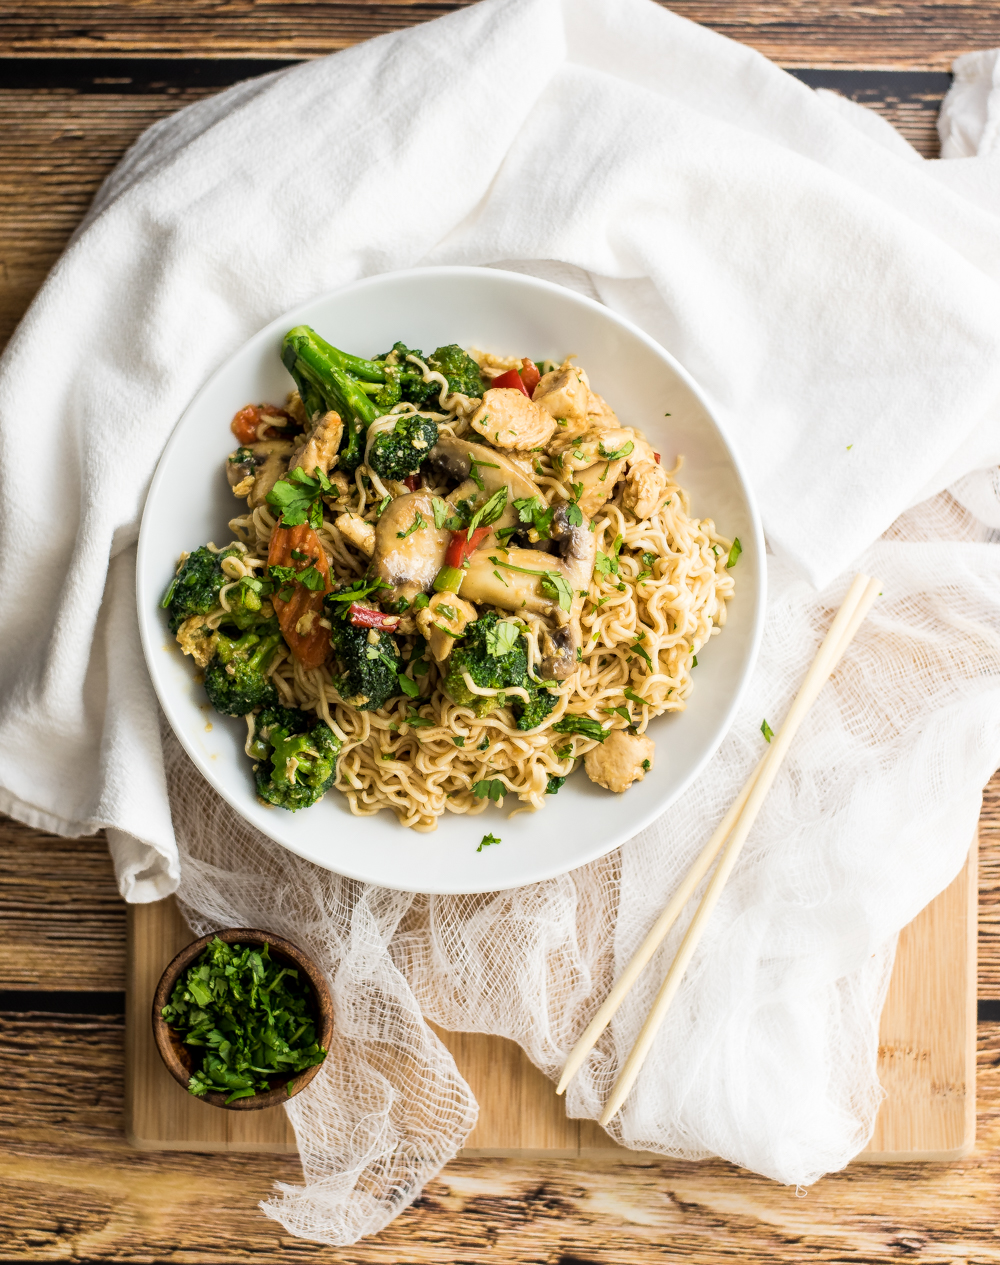 30-Minute Chicken Stir Fry Ramen is the perfect family-friendly weeknight meal. It is on the table in 30 minutes and is exploding with flavor thanks to House of Tsang's General Tso Stir-Fry Sauce!